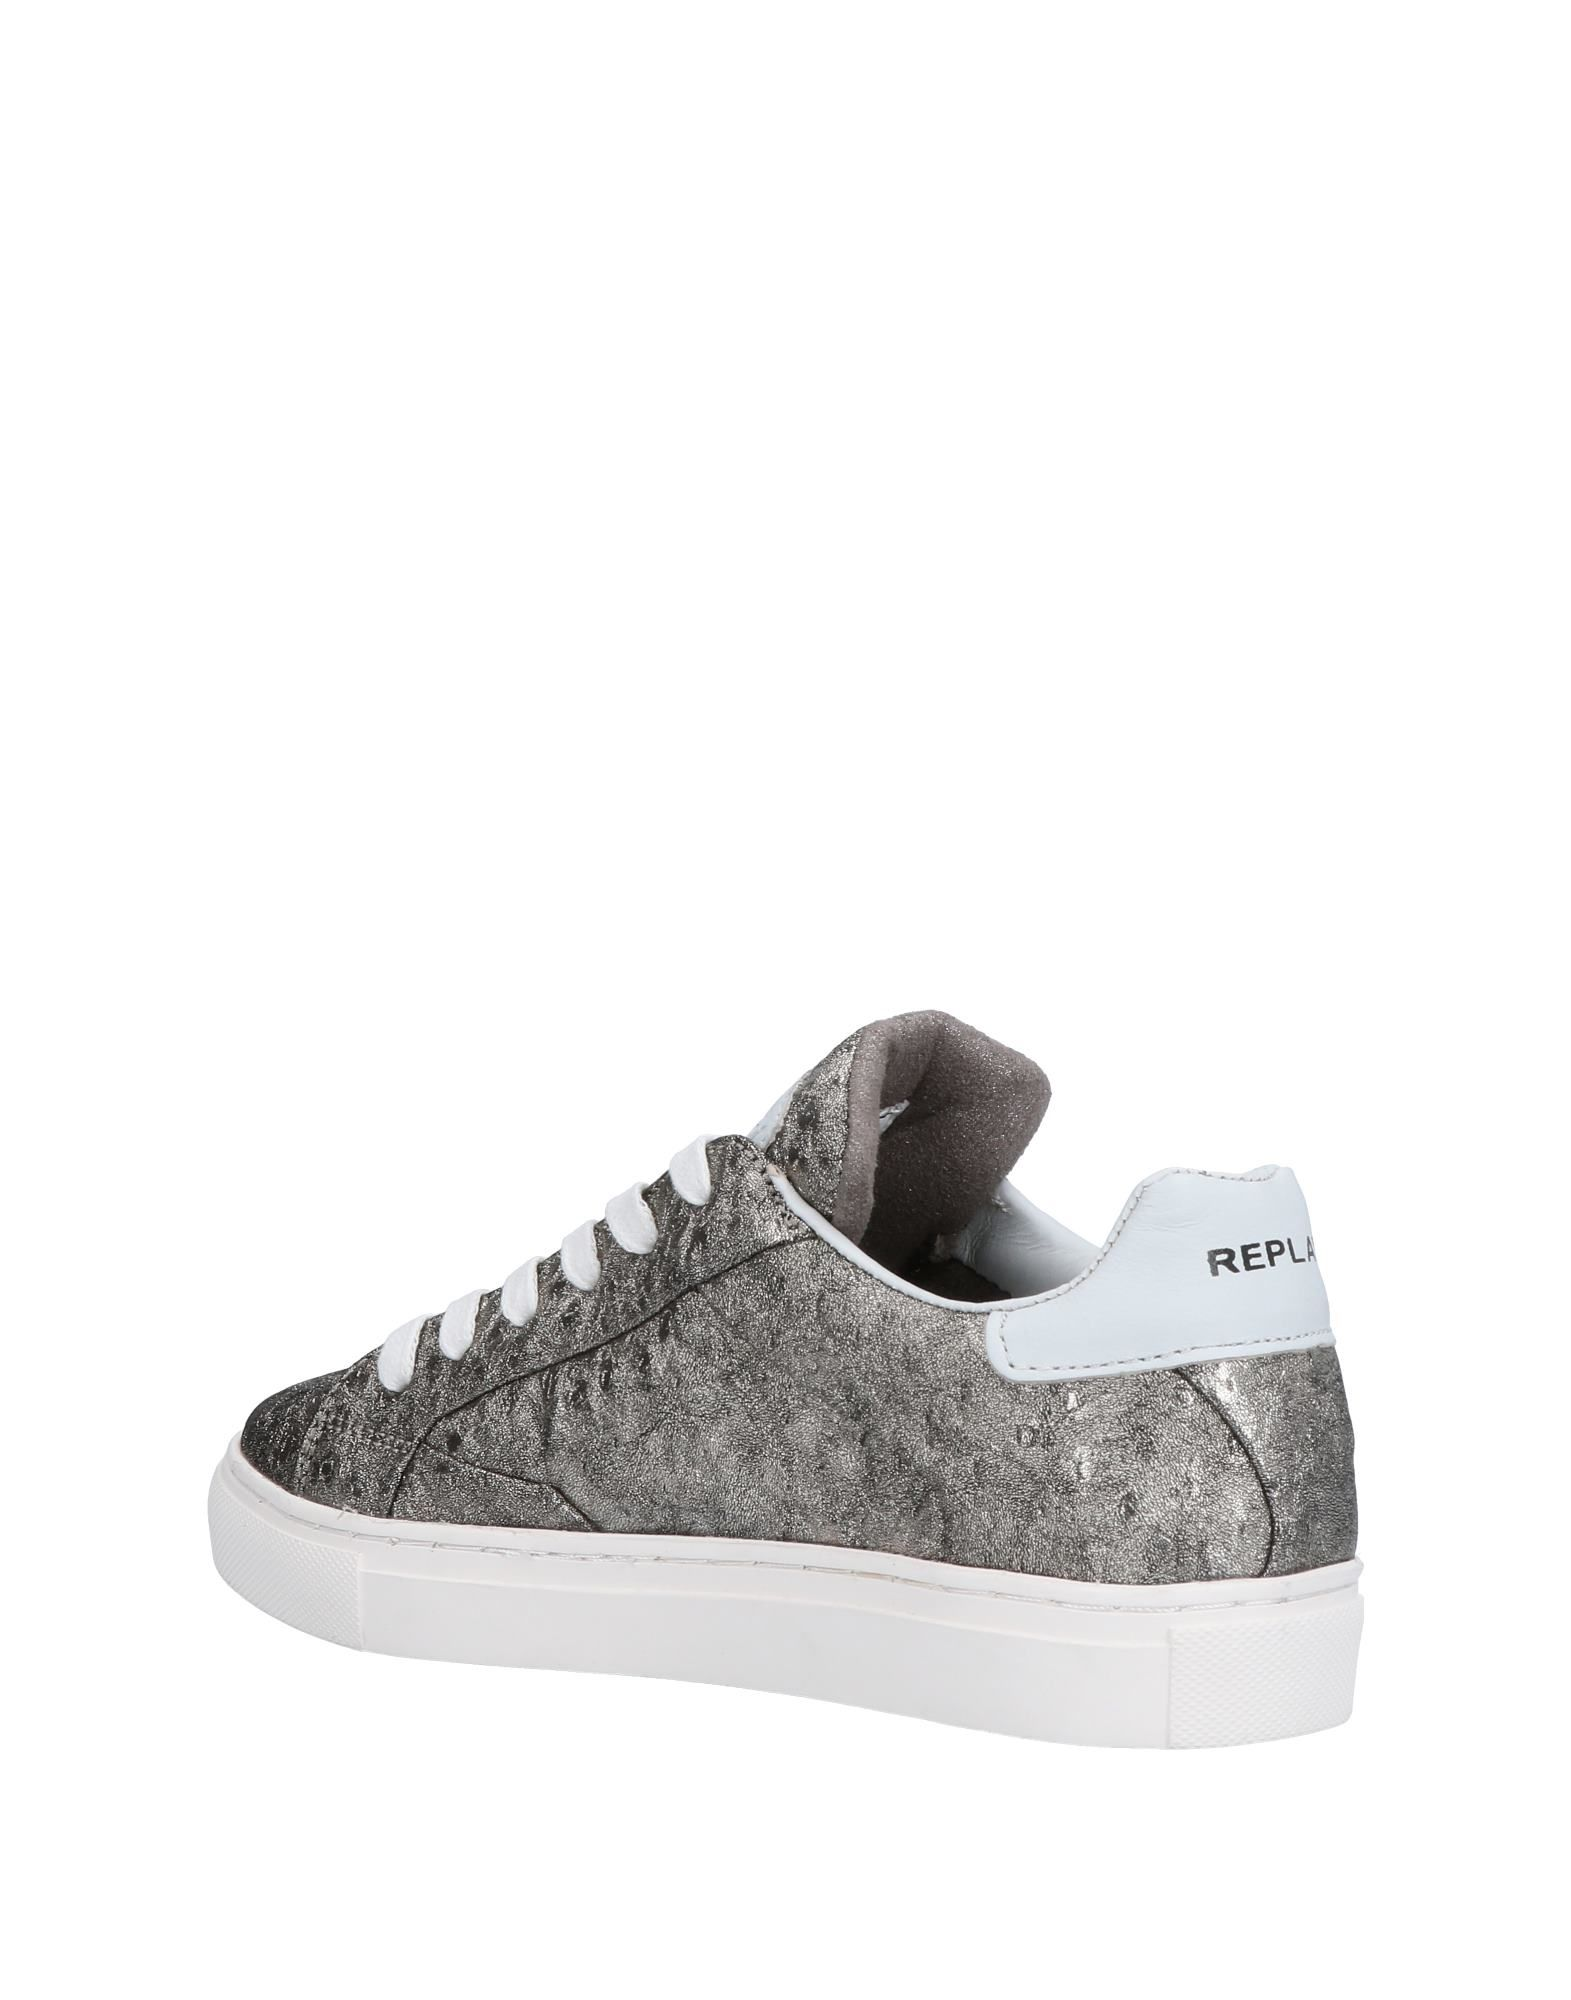 Replay Replay  Sneakers Damen  11493669XA 8791f3